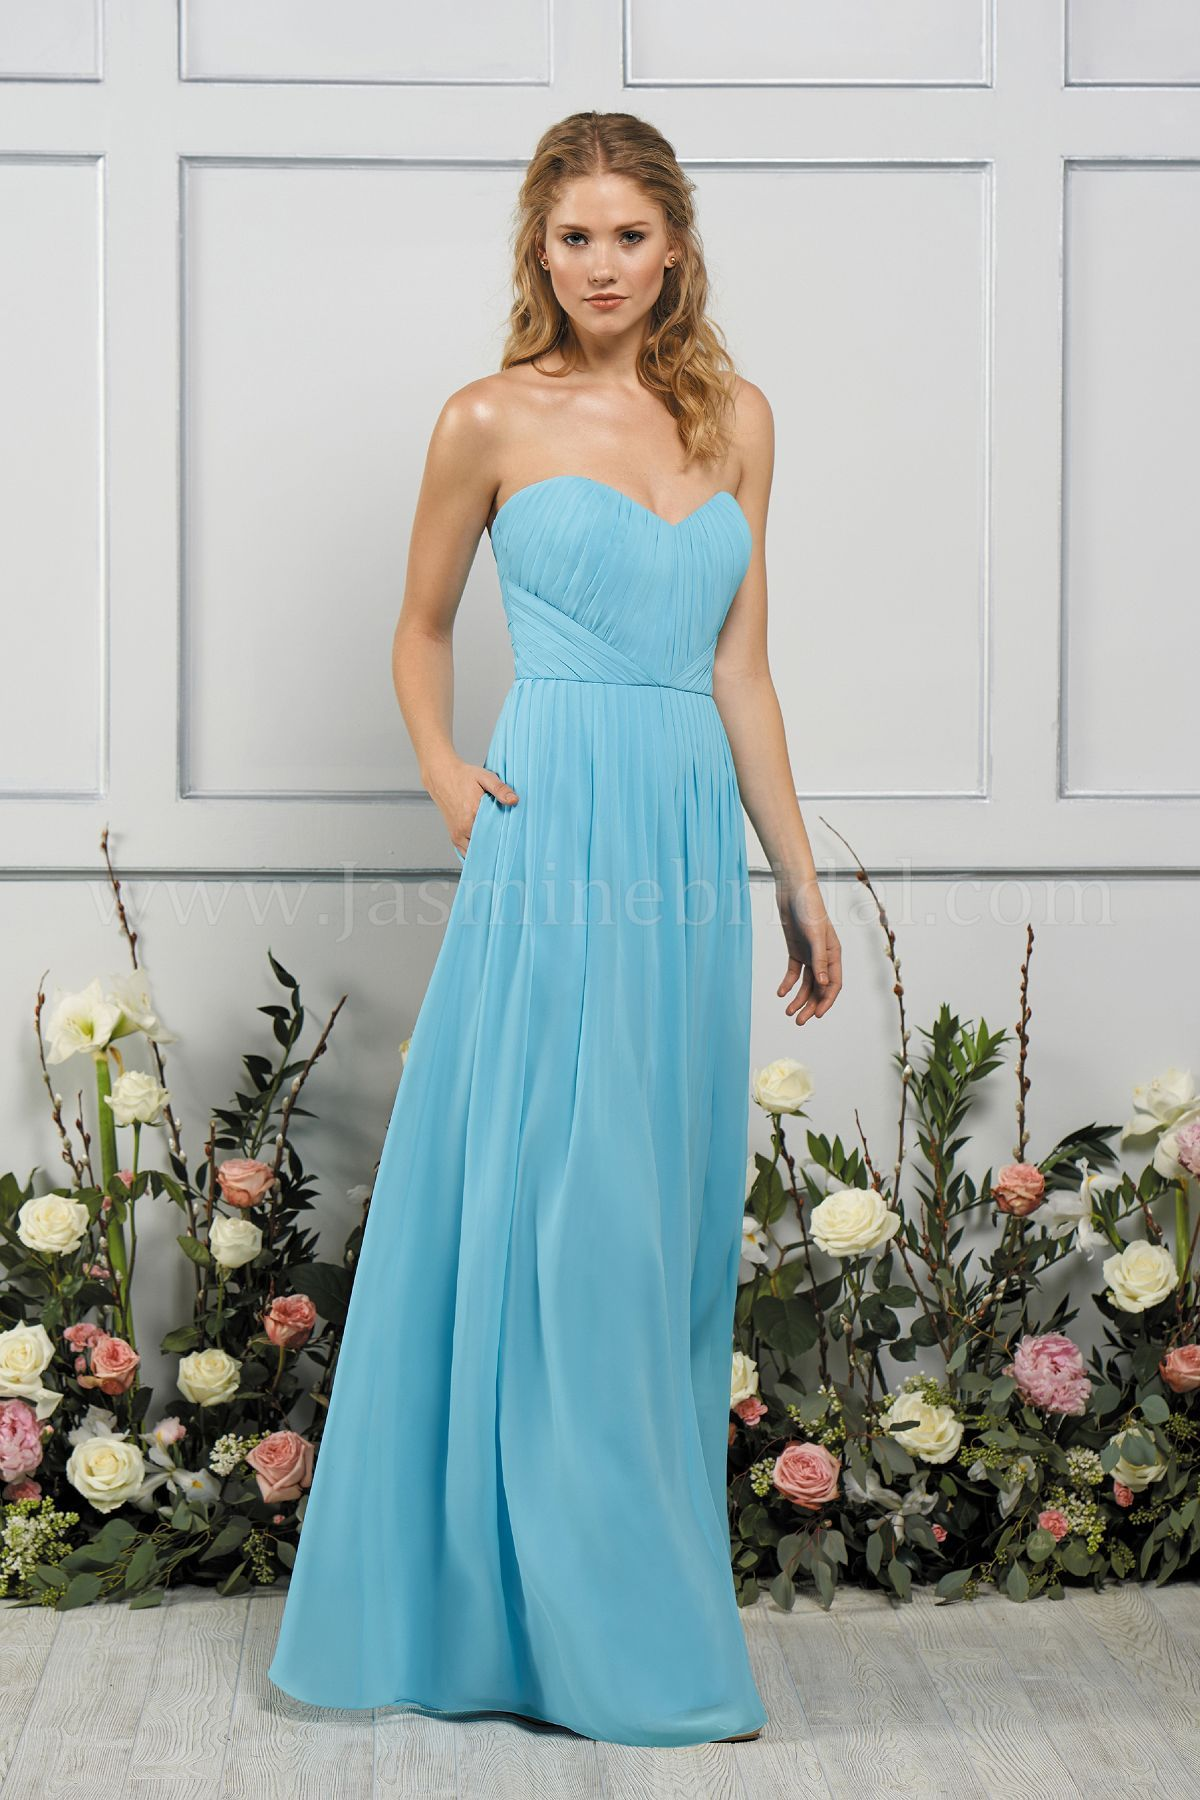 Jasmine bridal b2 style b193055 in bahama breeze poly chiffon discover the perfect bridesmaid dresses and formal gowns from jasmine bridal shop our dress line is a popular choice nationwide ombrellifo Gallery